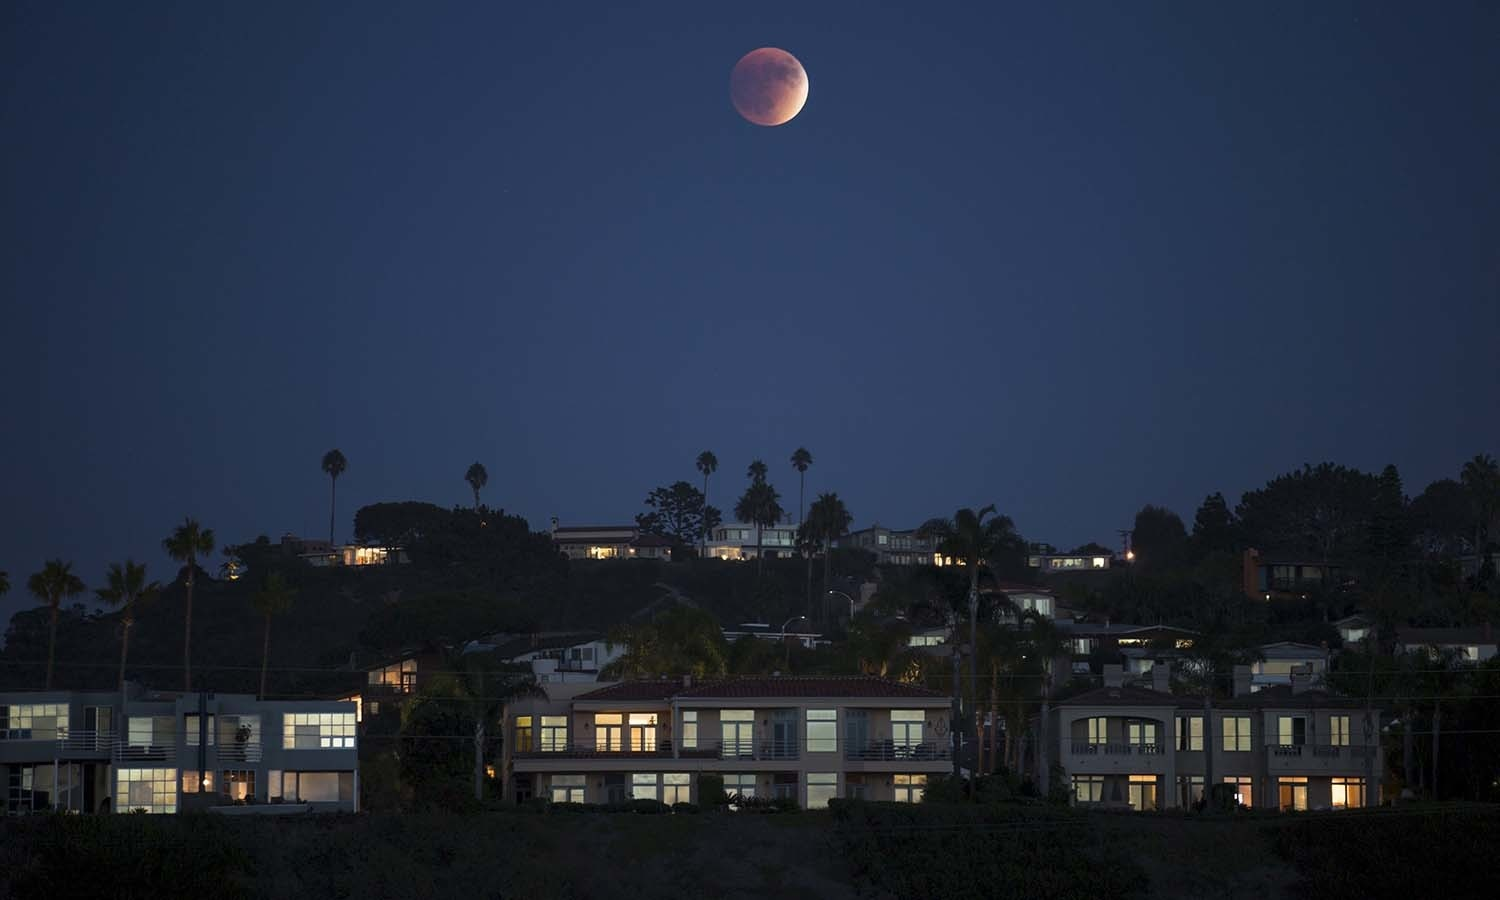 A blood moon rises behind hilltop residences in Solana Beach, California. — Reuters